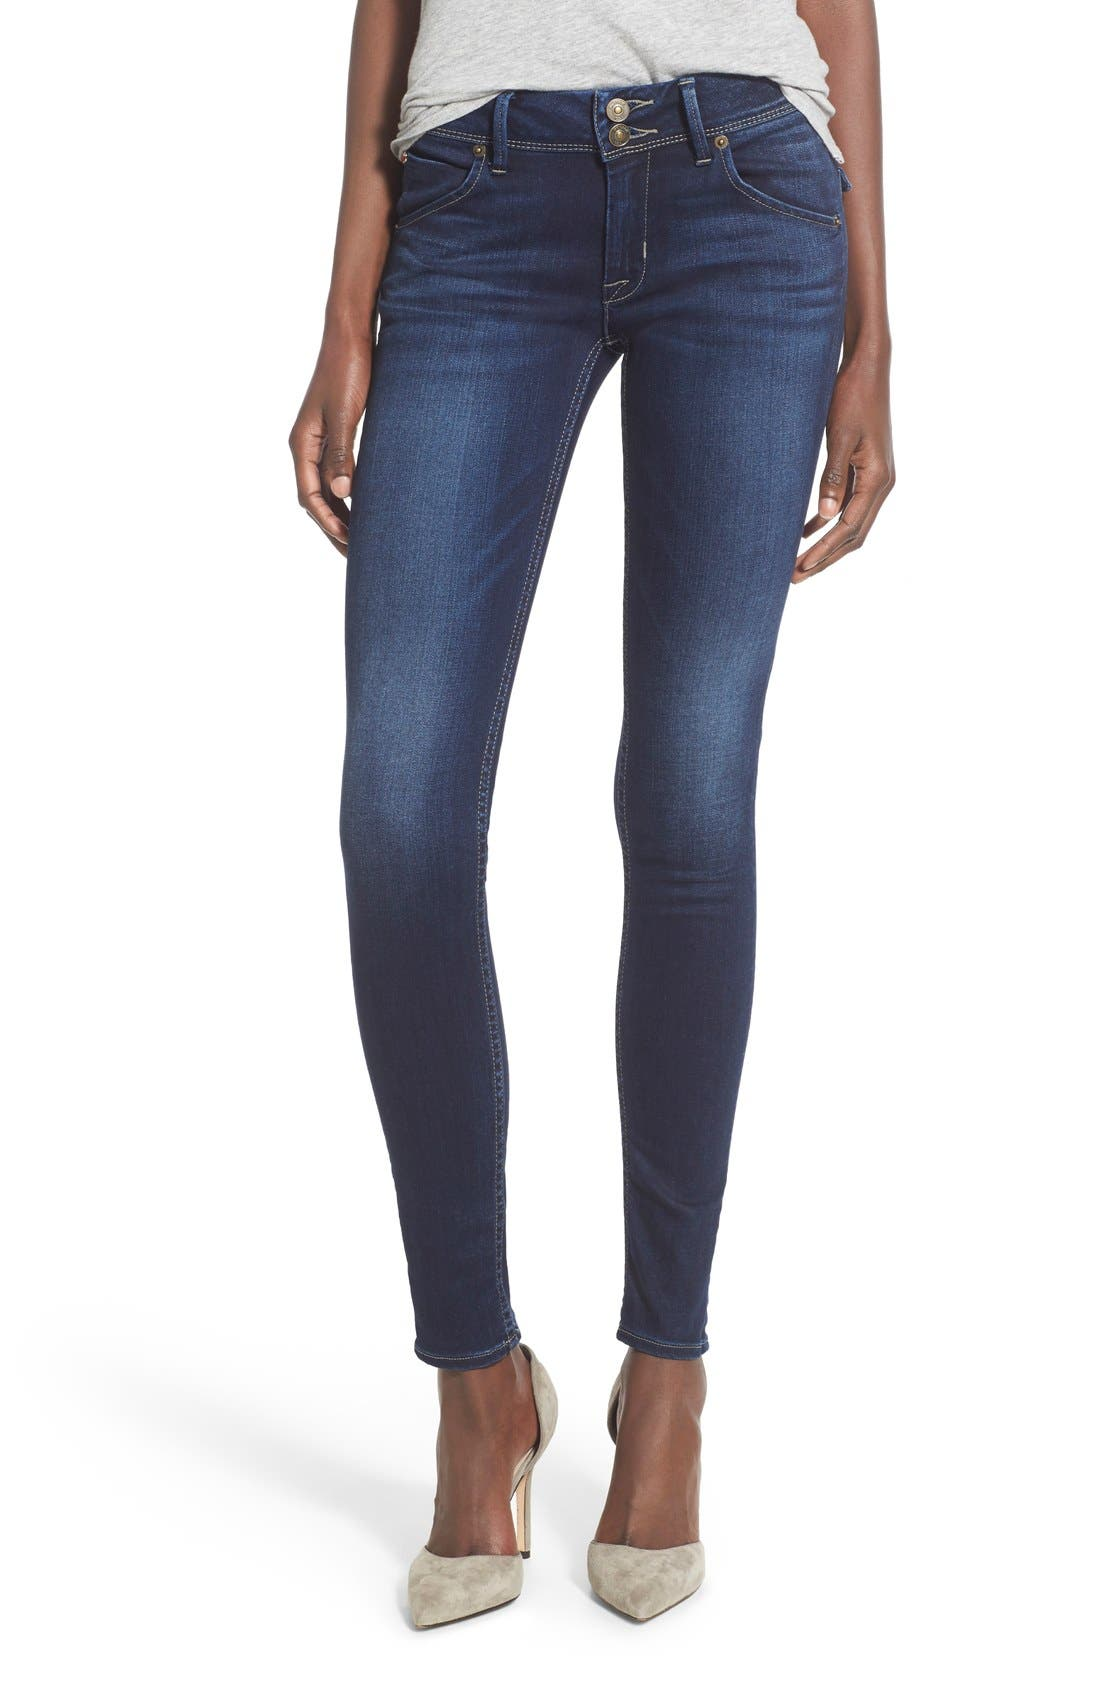 What are mid rise skinny jeans